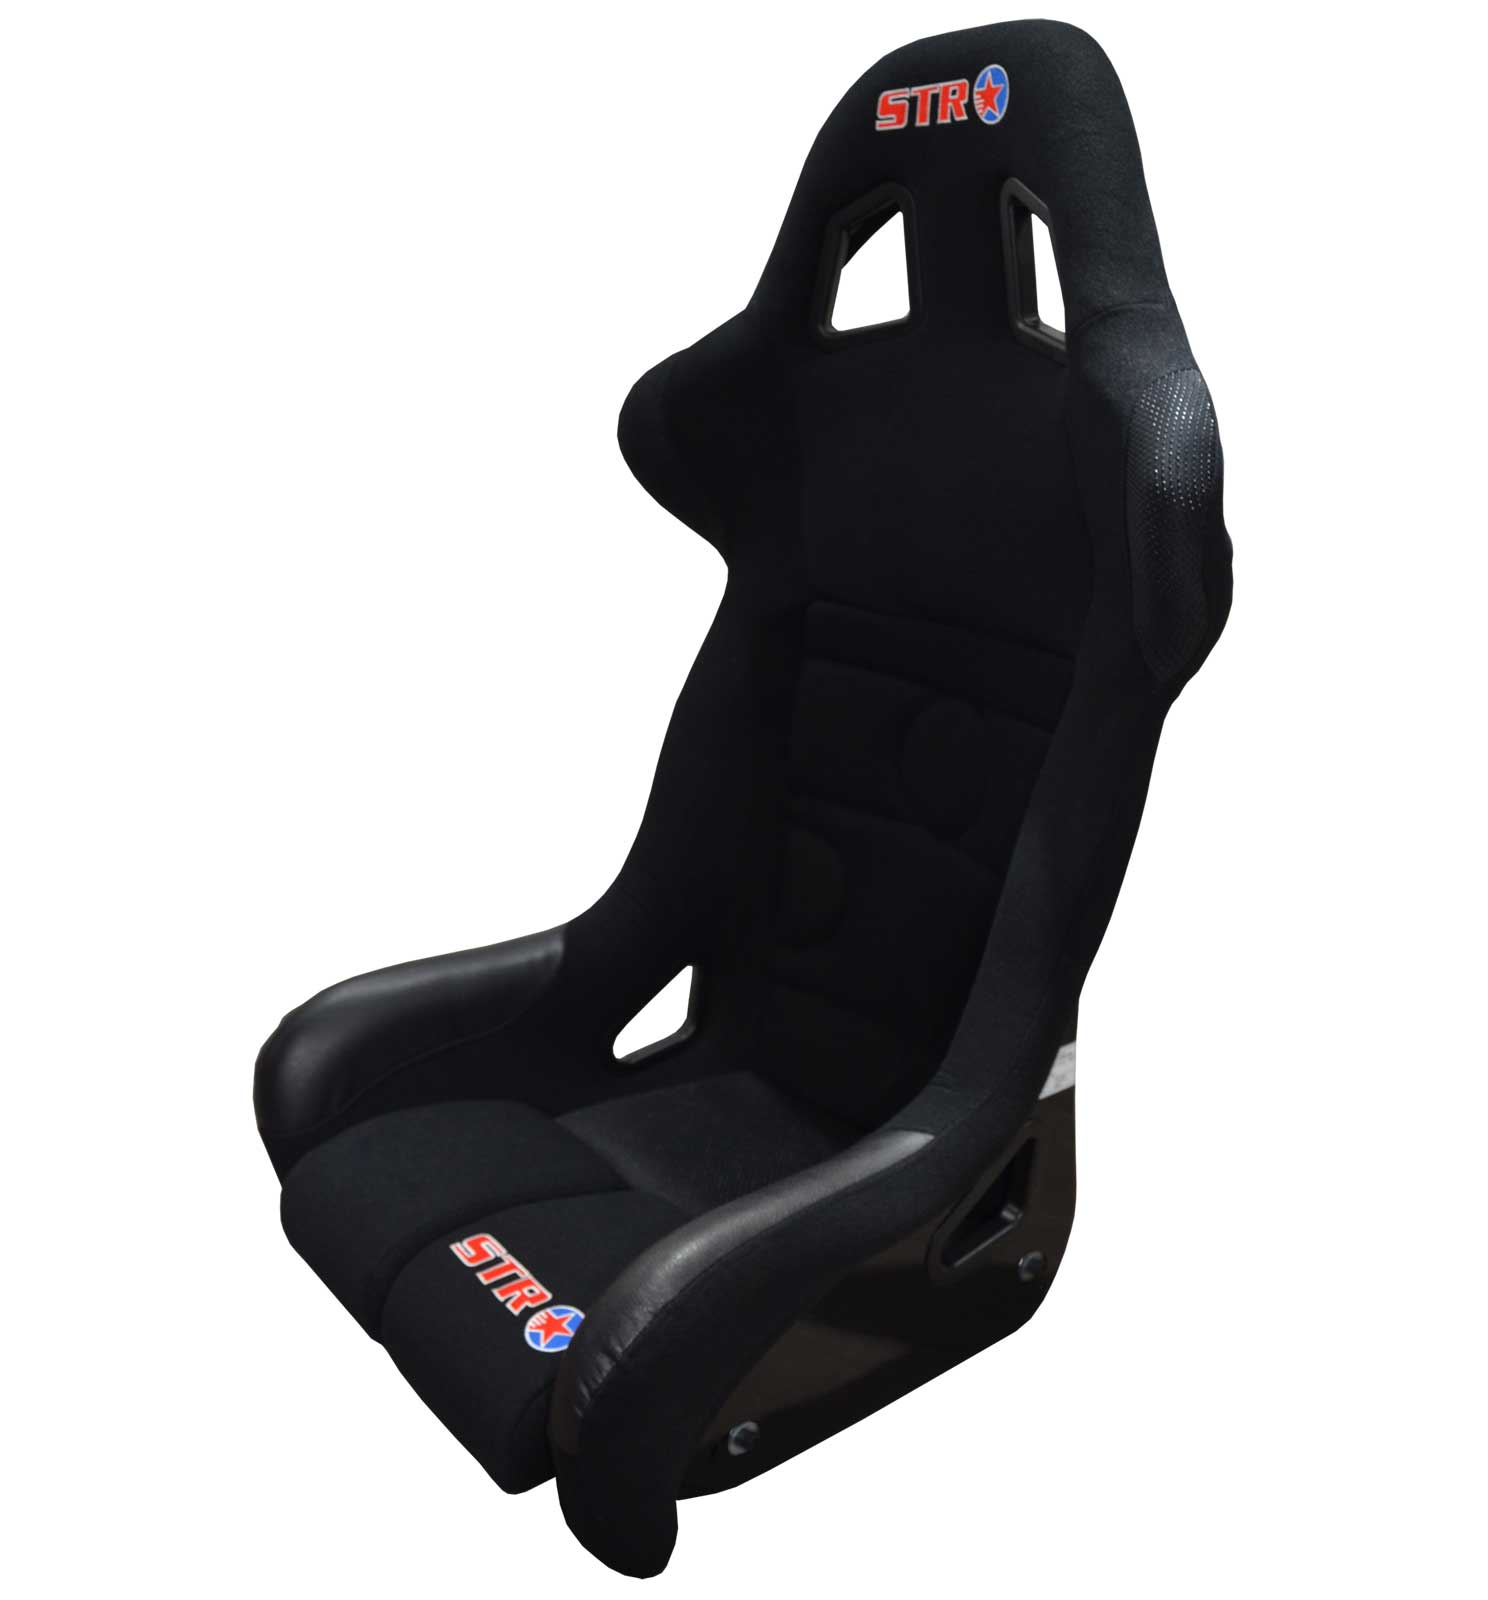 STR 'Angolo' FIA Approved Race/Rally/Bucket Seat  | Black - 2023